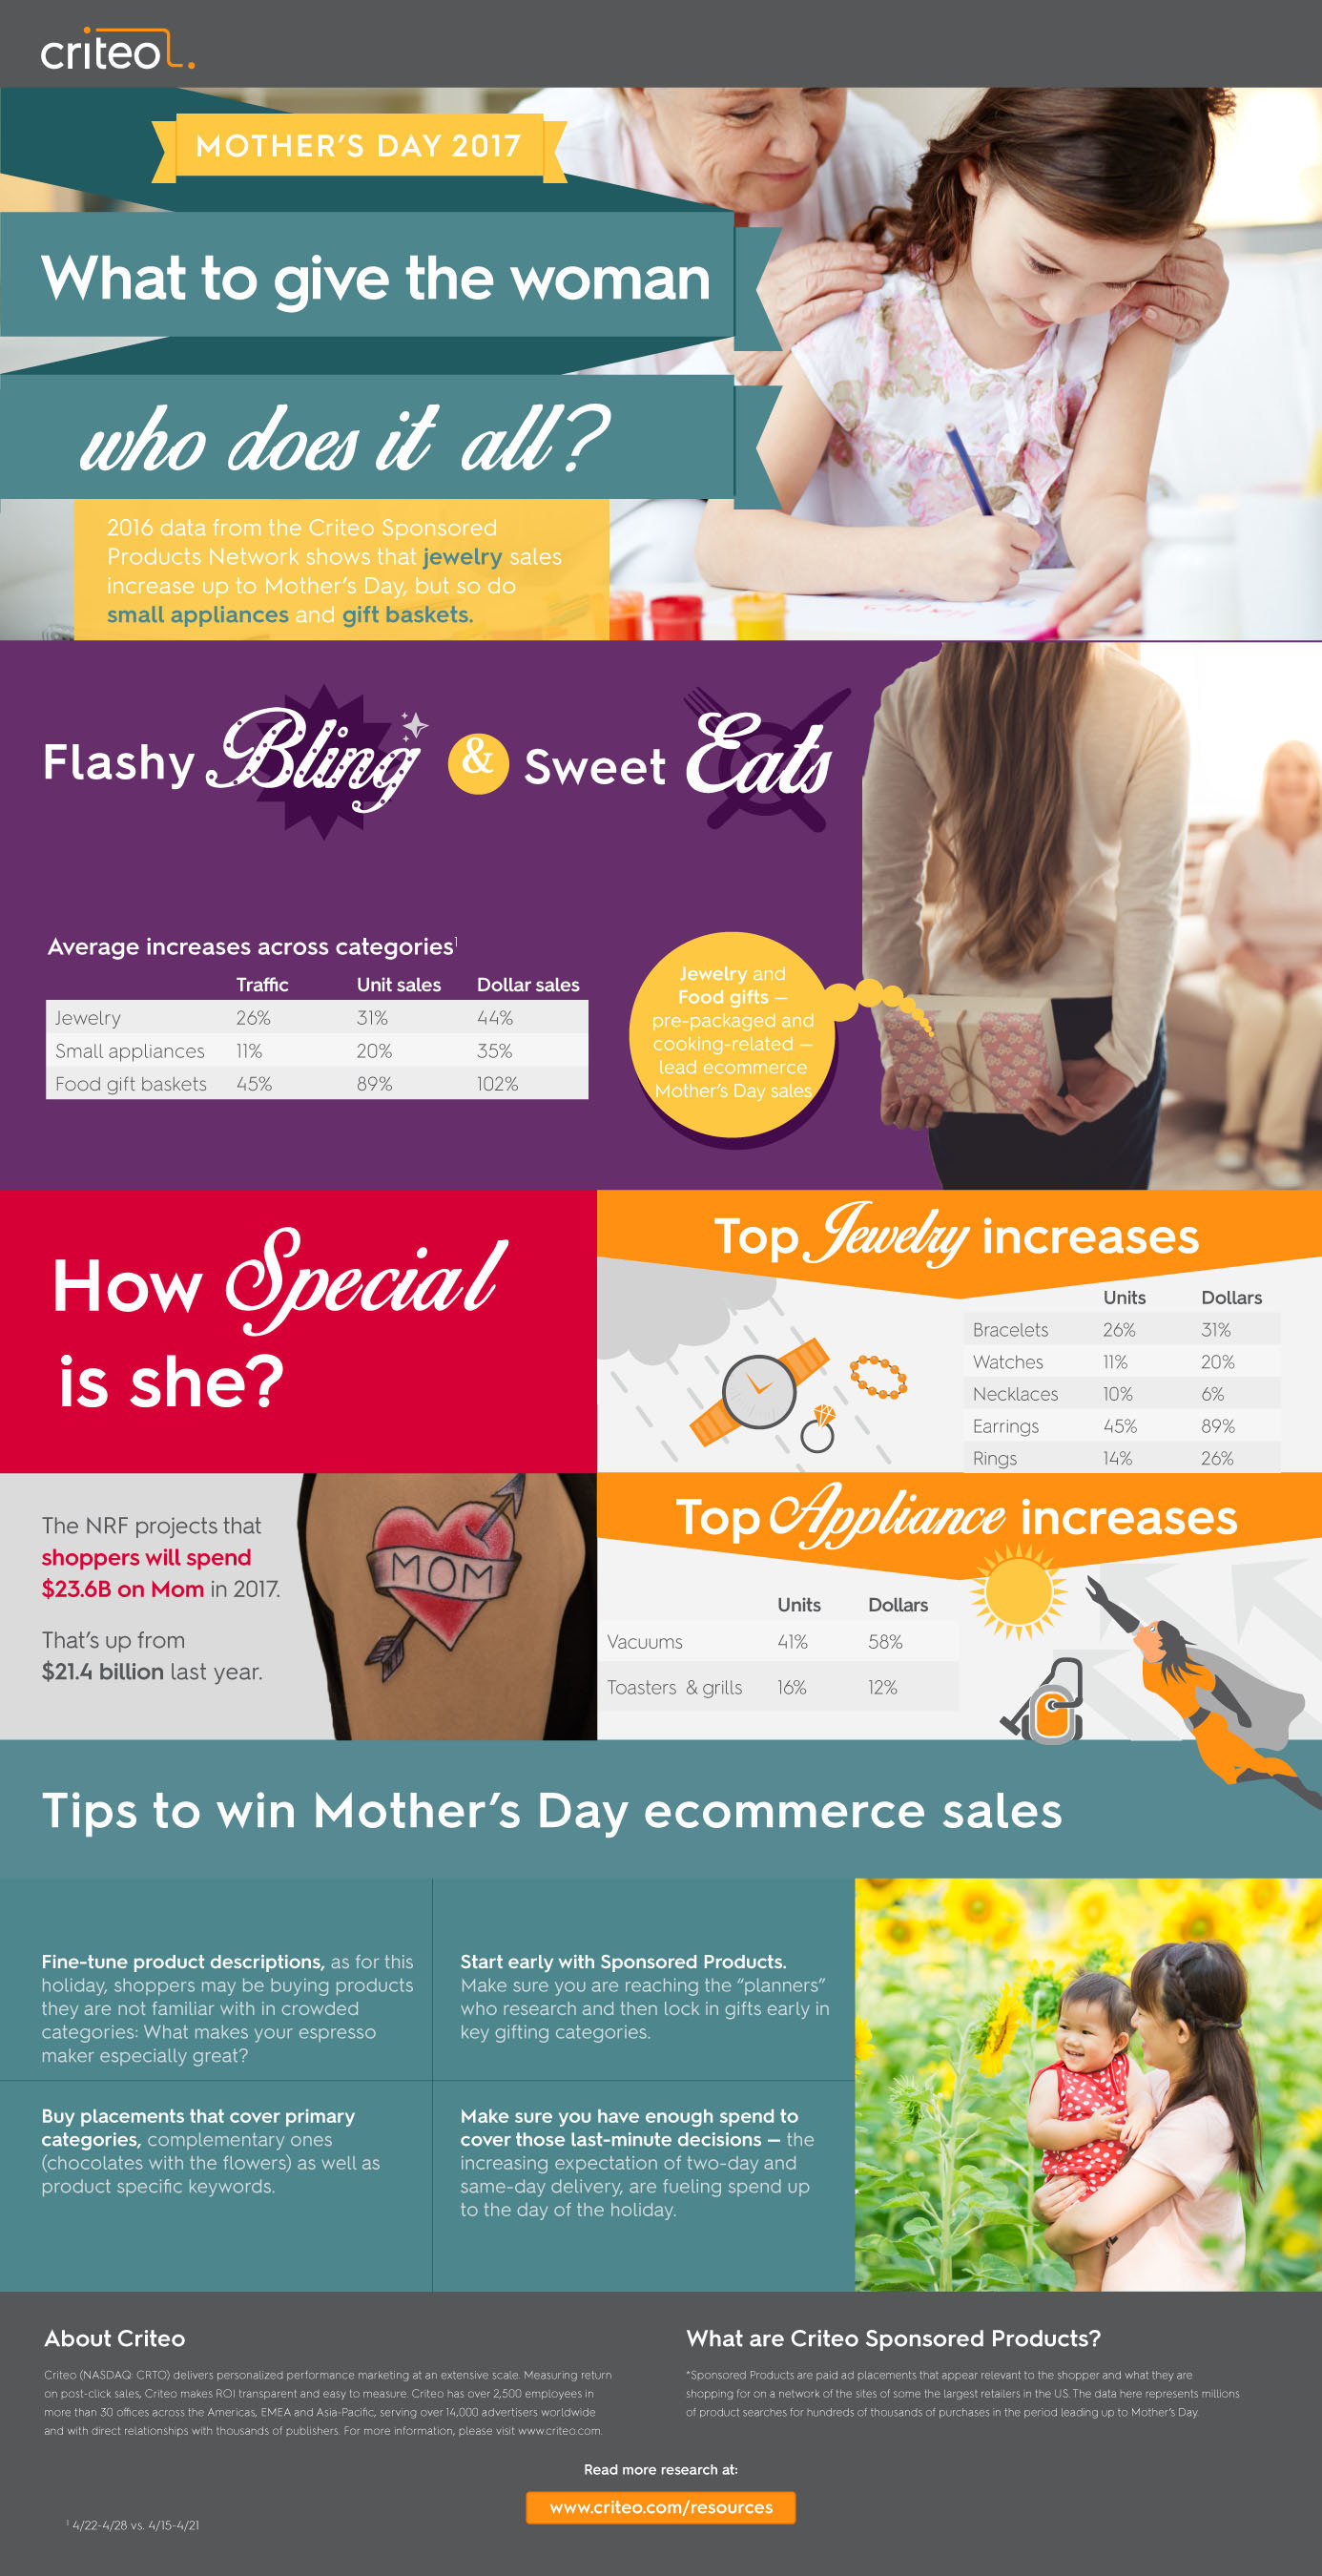 Criteo's Mother's Day 2017 Report